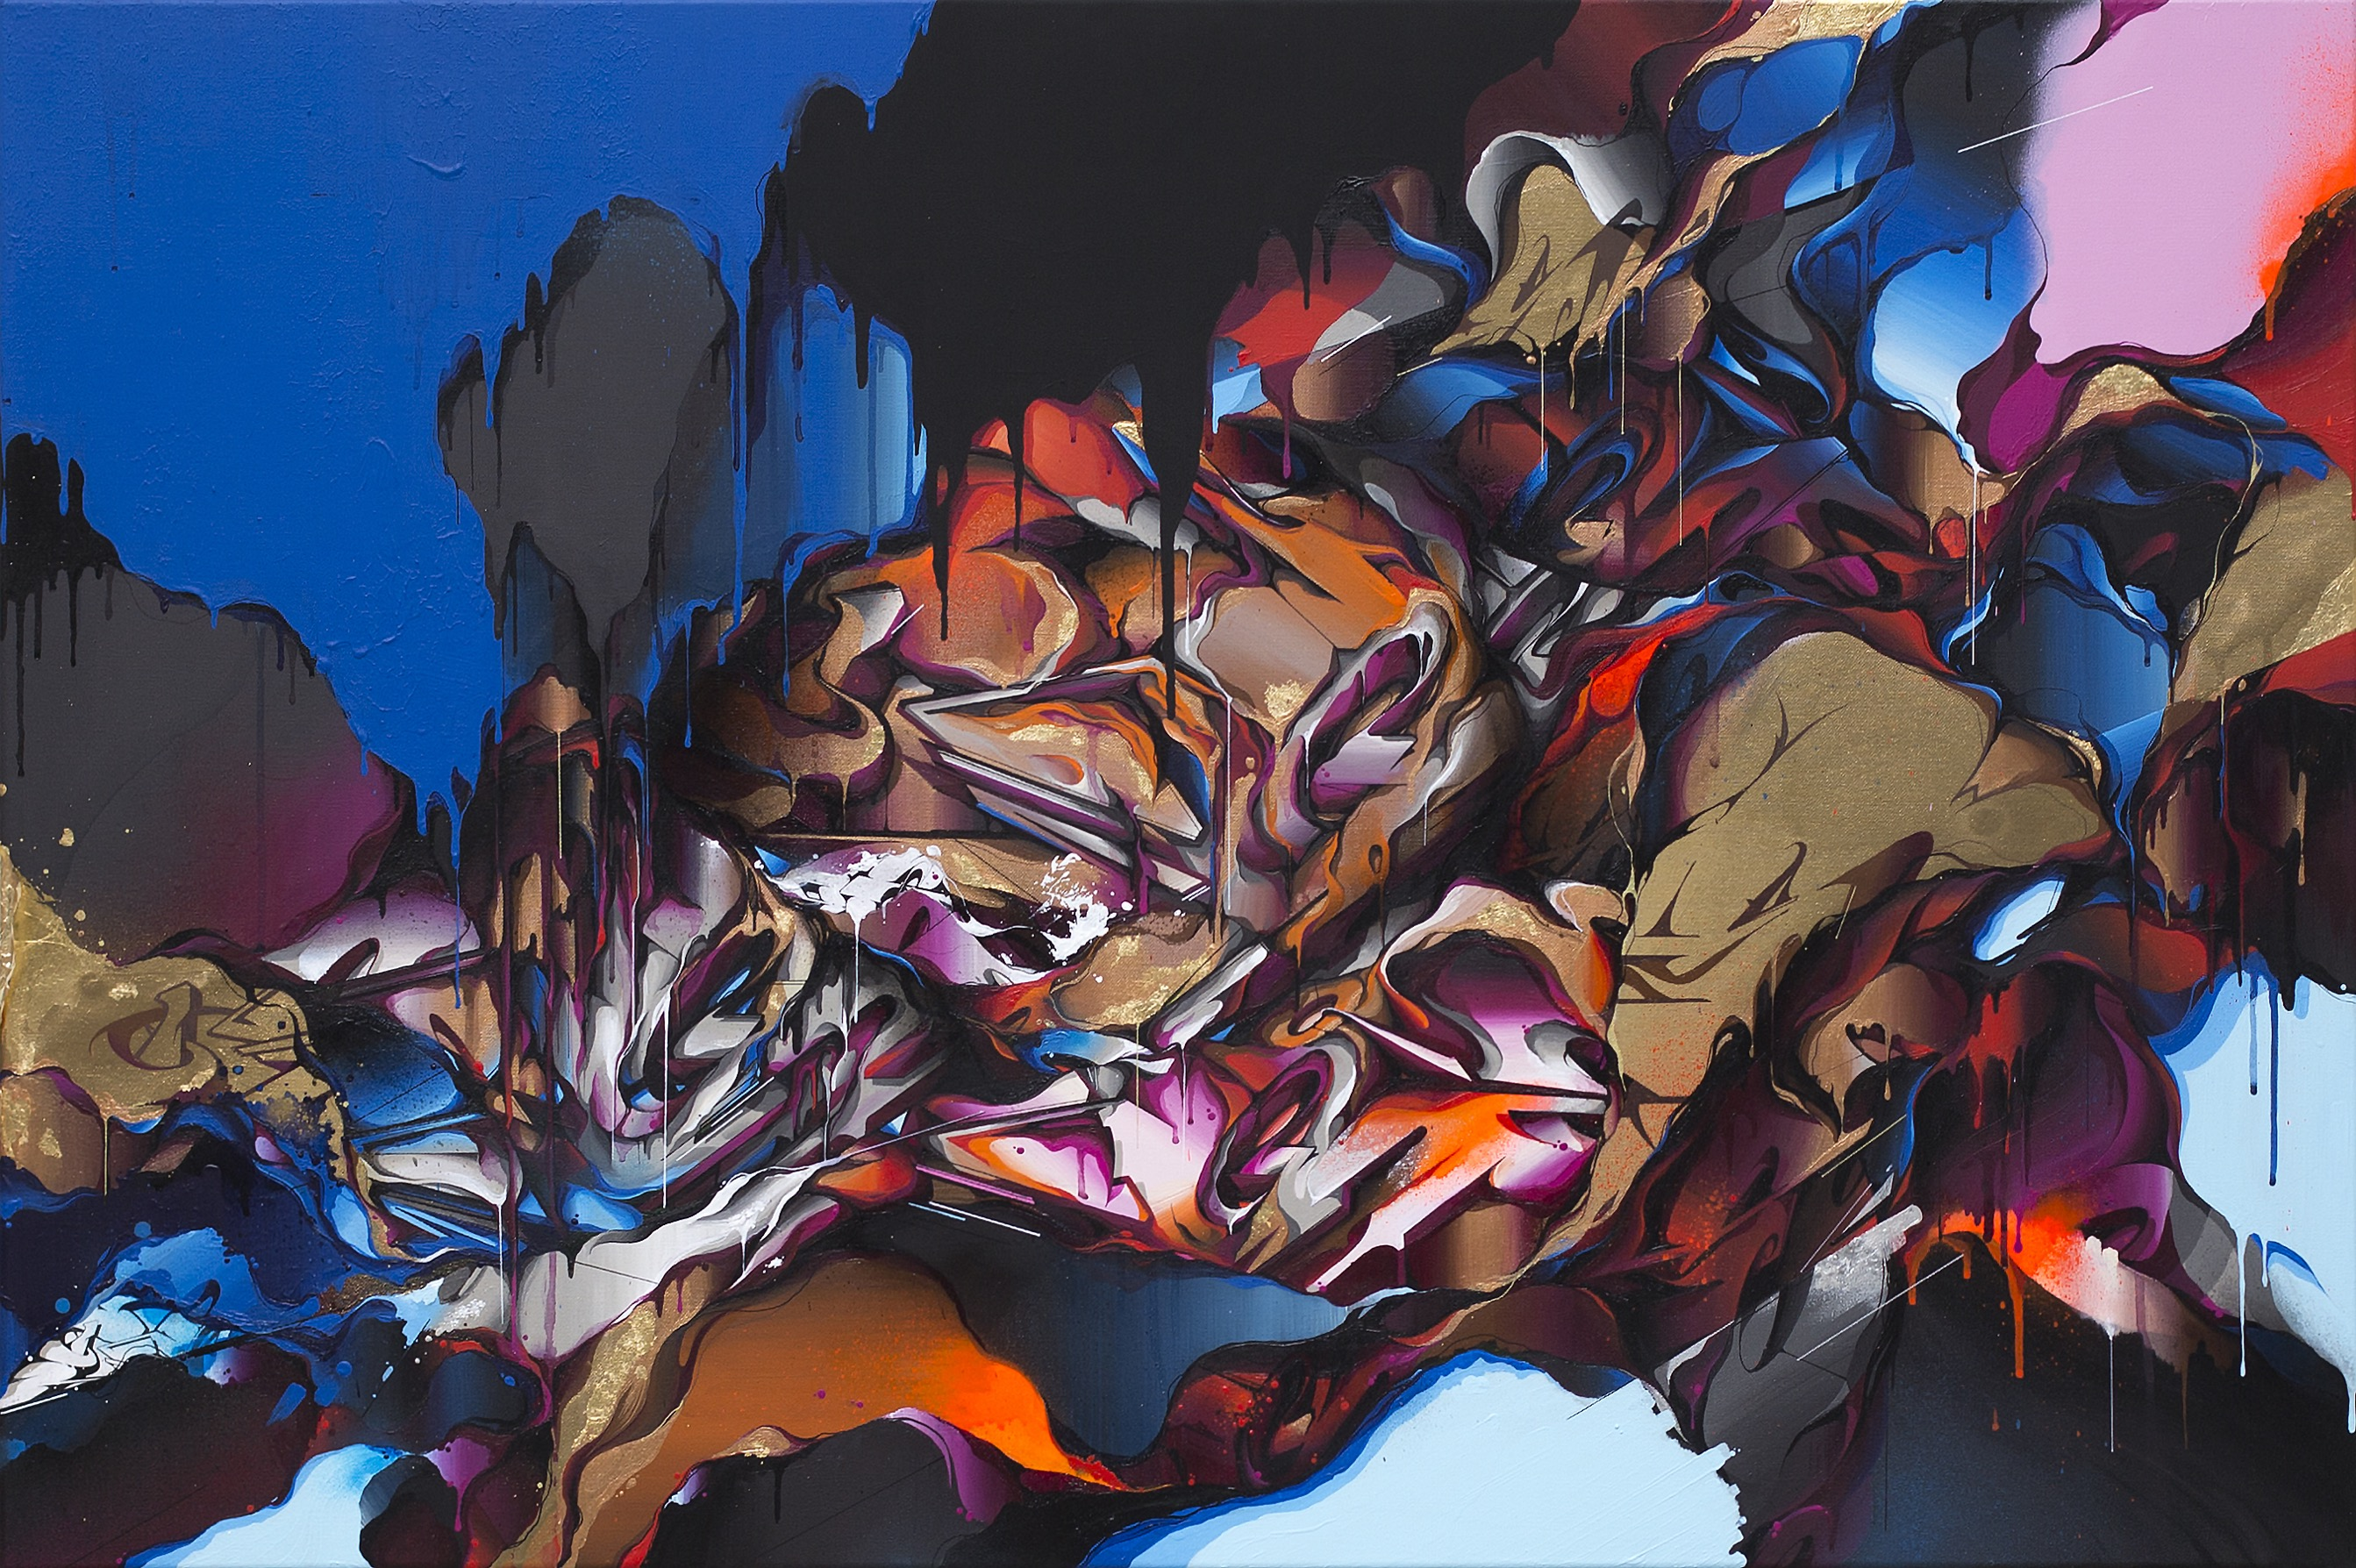 A work by Does - Tempest canvas wouter kooken